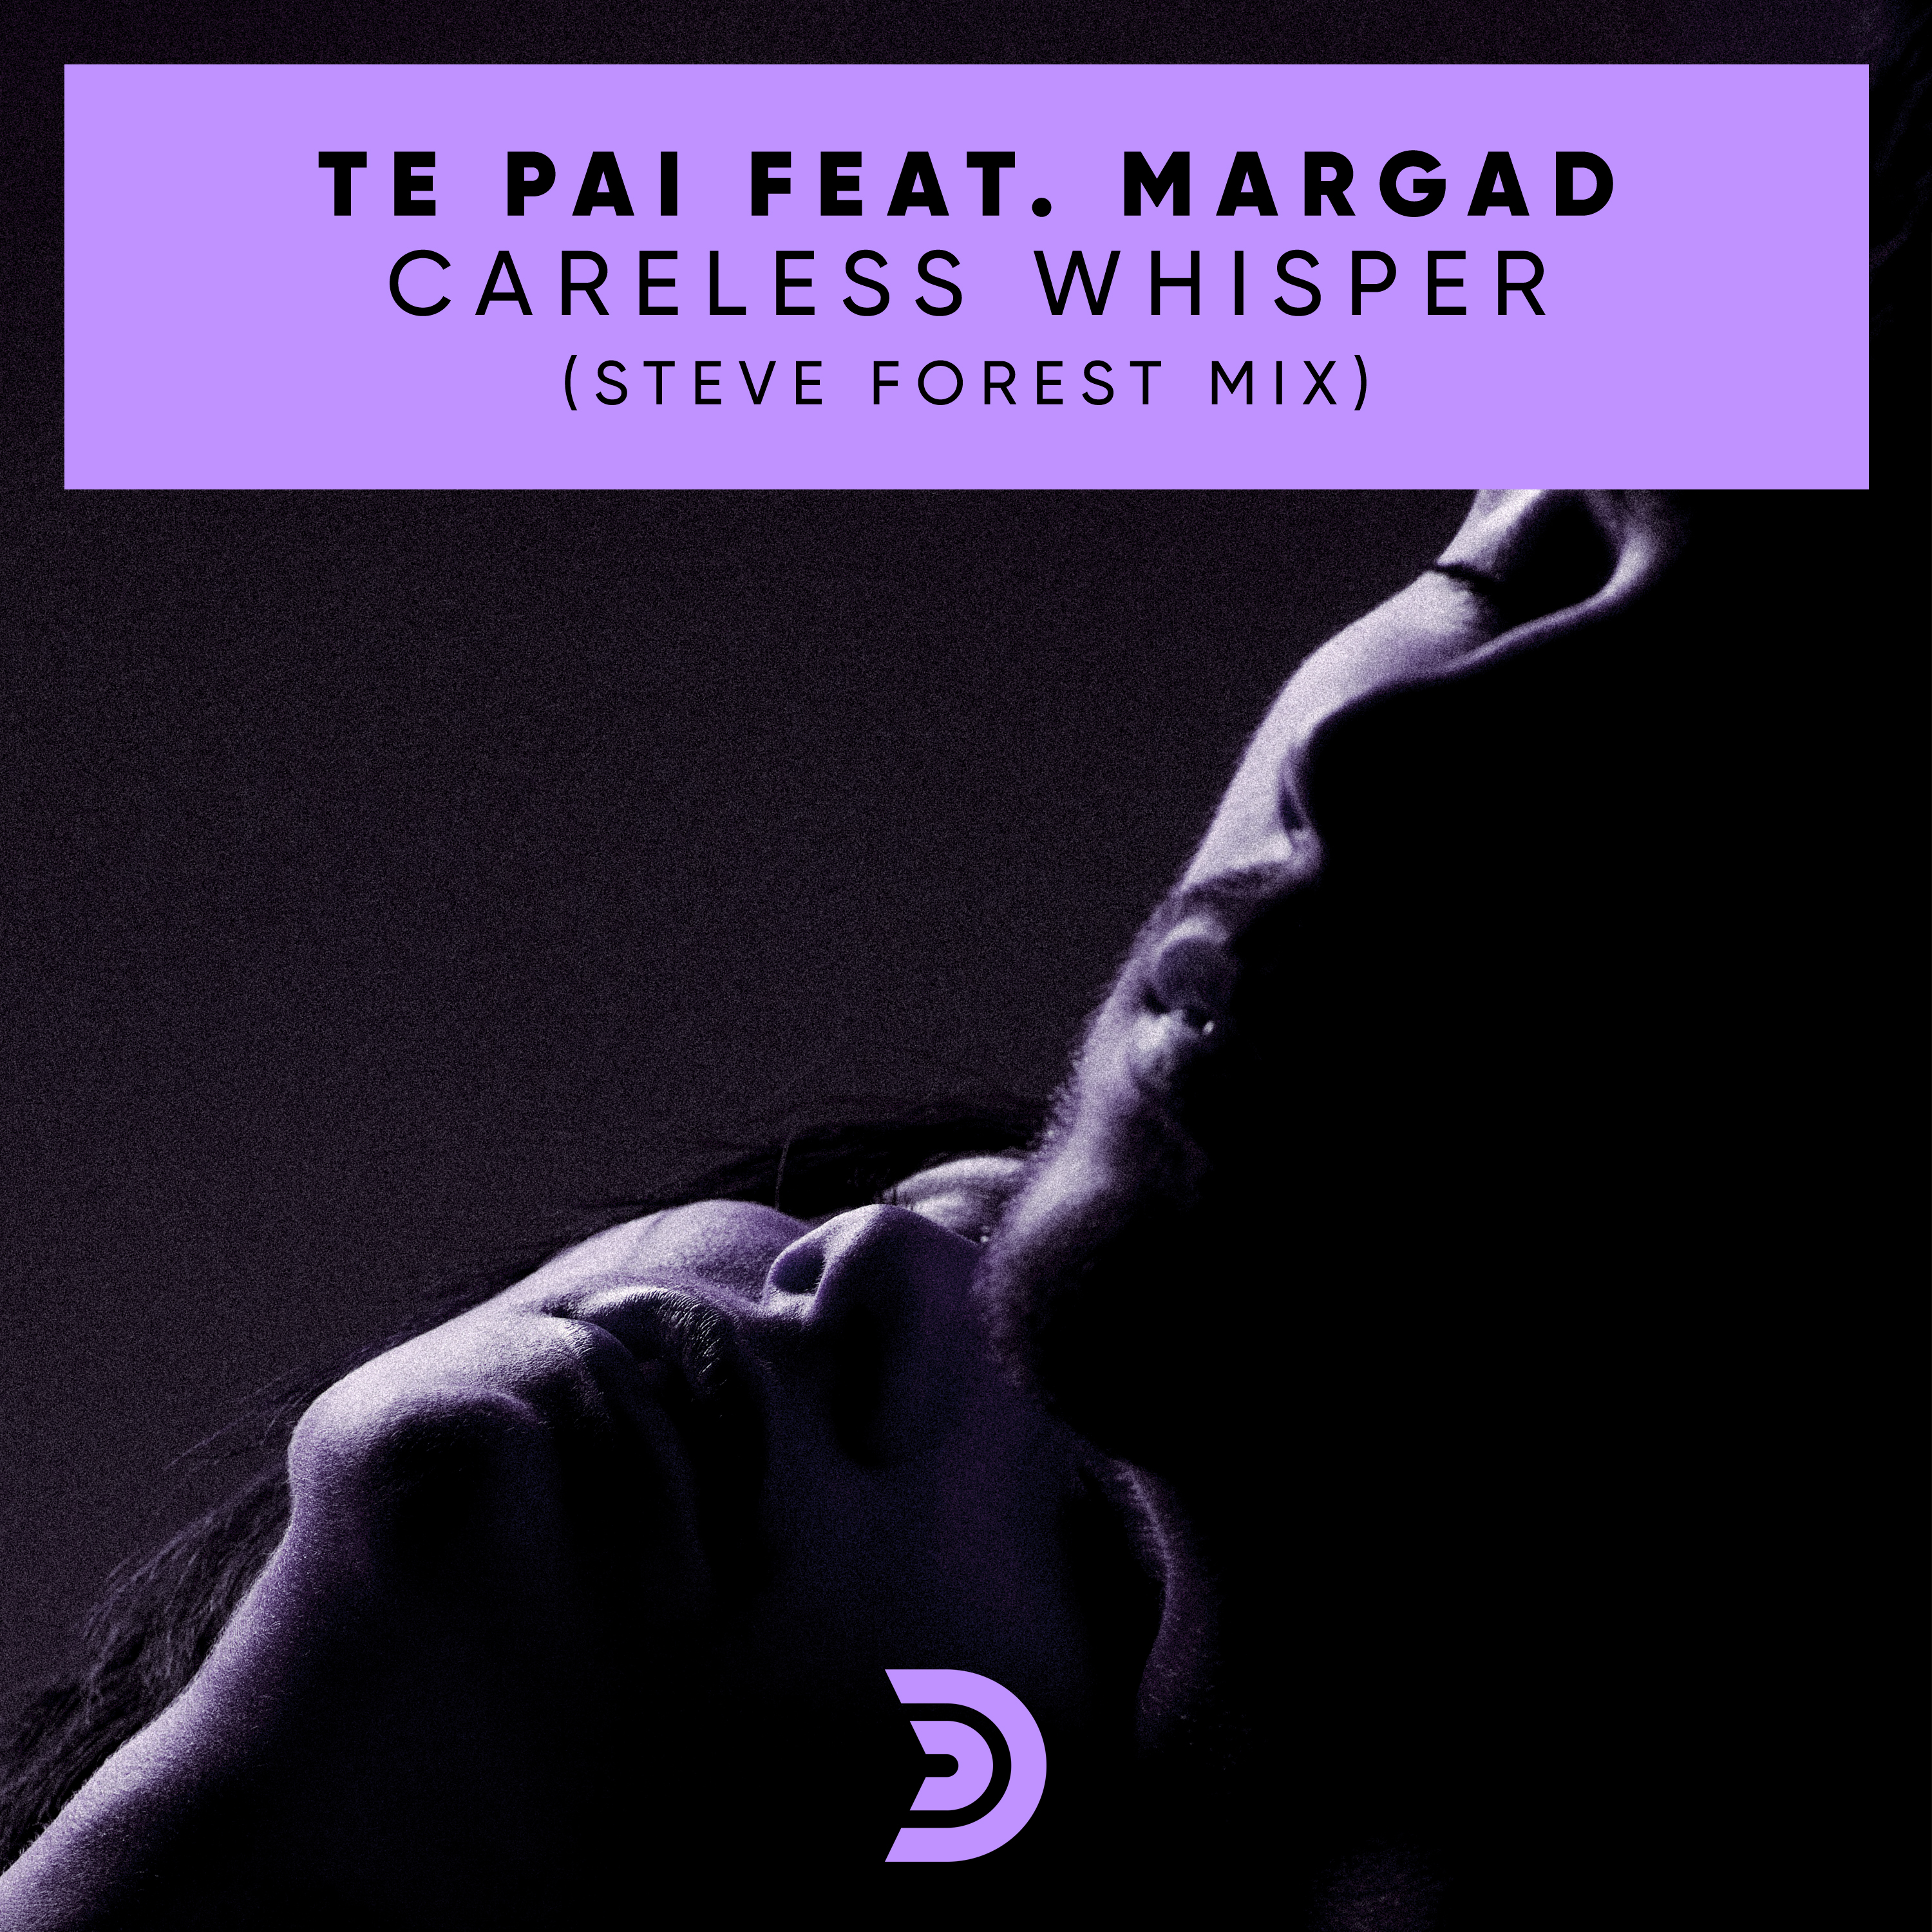 CARELESS WHISPER (STEVE FOREST MIX)